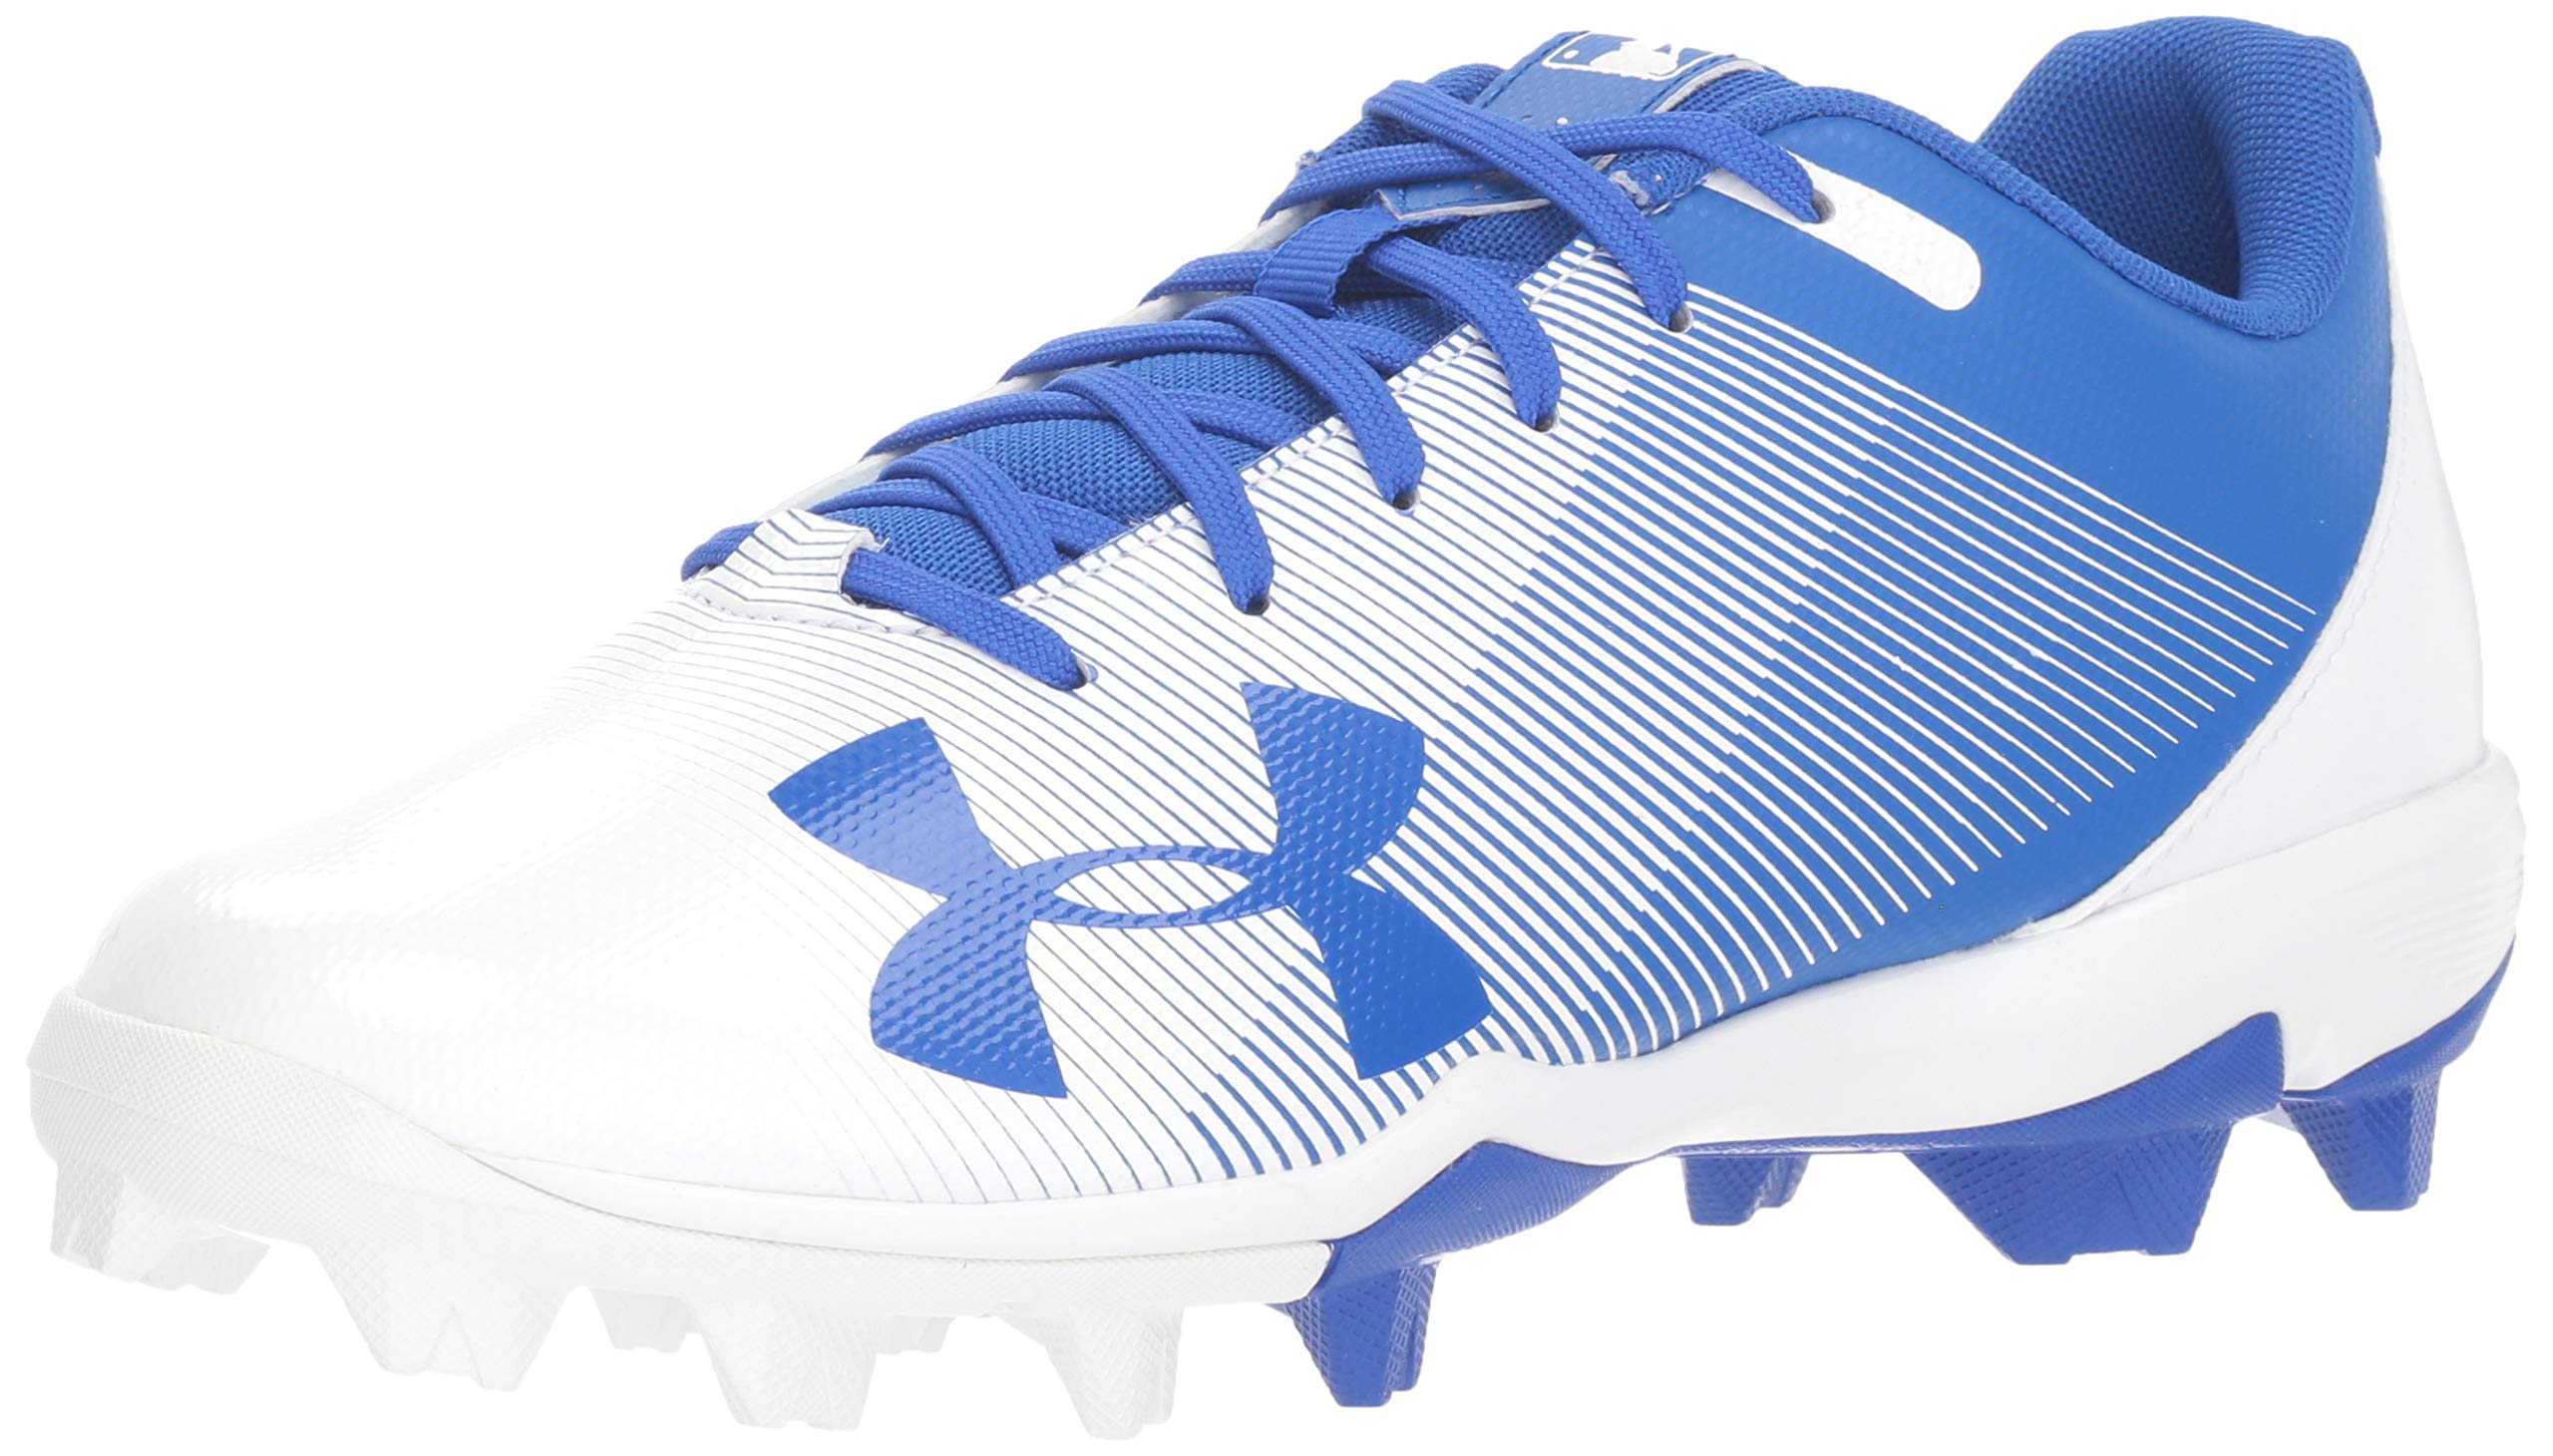 Under Armour Men's Leadoff Low RM Baseball Shoe, Team Royal (411)/White, 7 by Under Armour